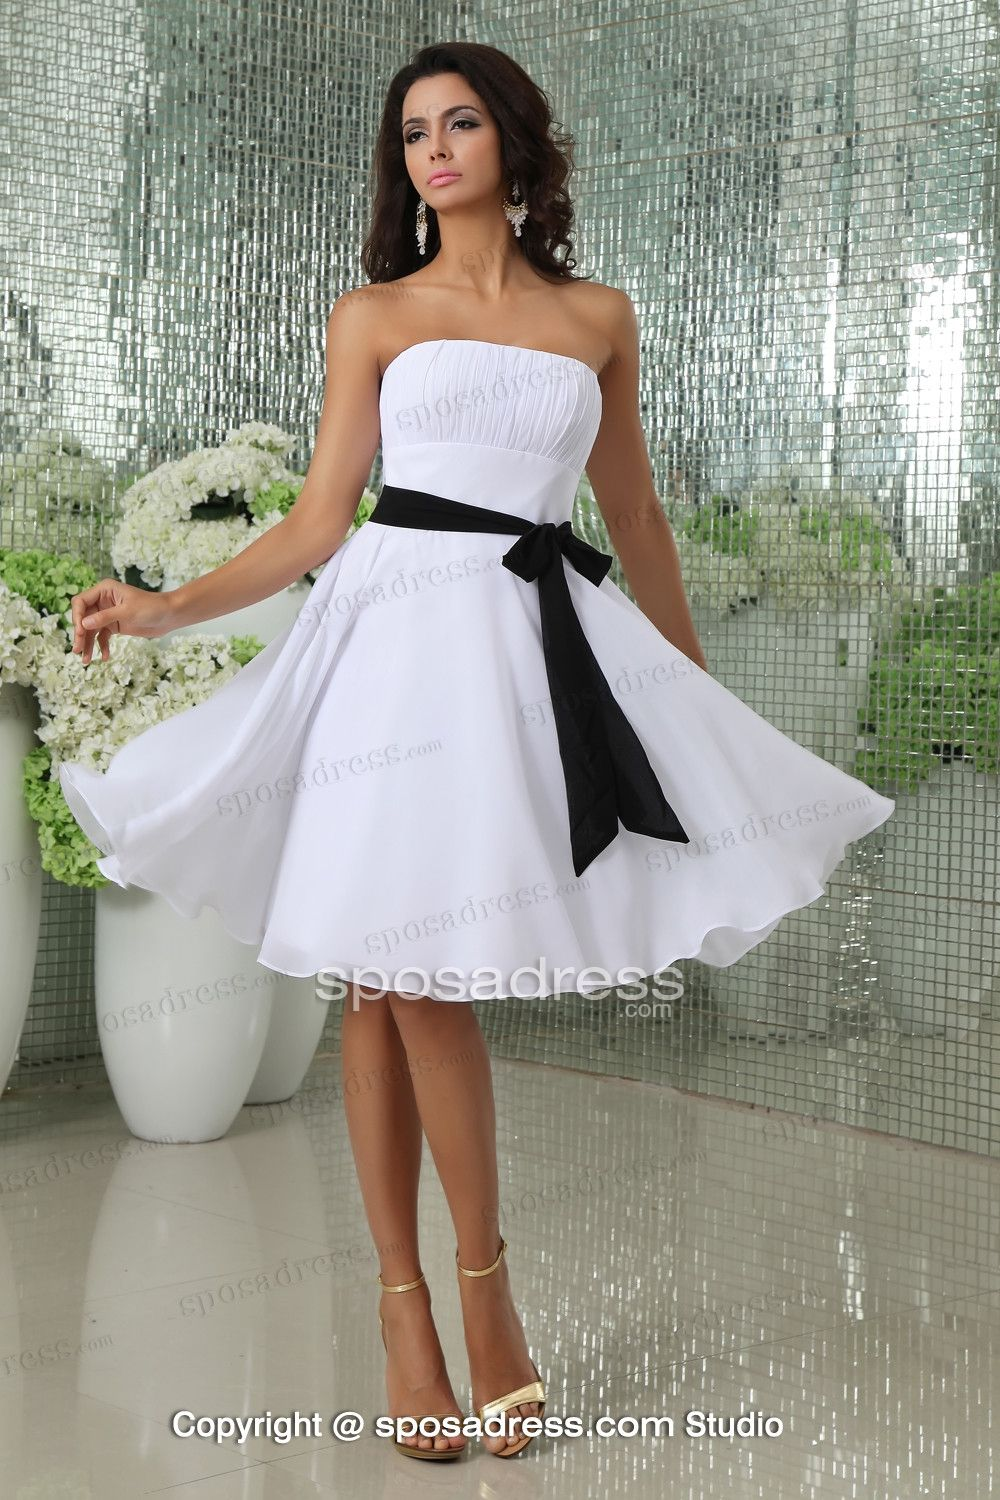 77168b27f2 White A-line Strapless Chiffon Short Bridesmaid Dress With Black Sashes